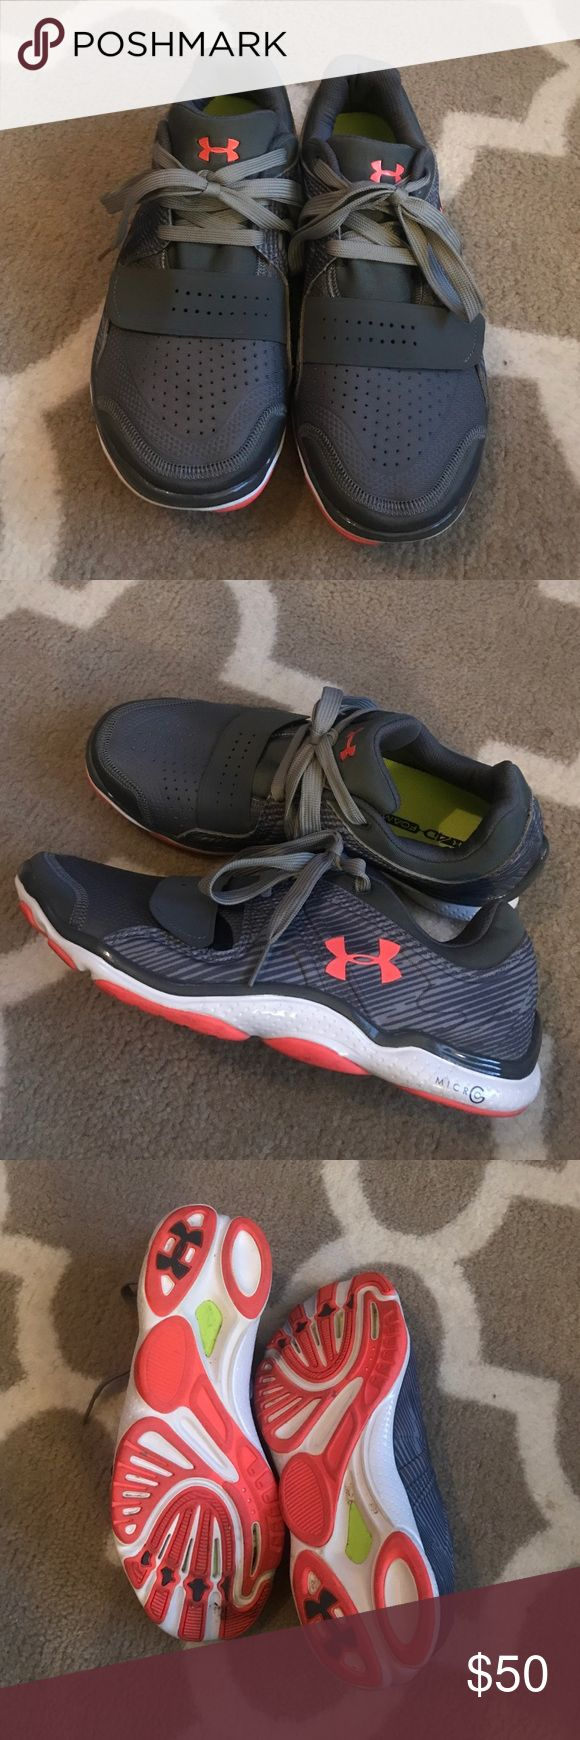 NEW Under Armour Tennis Shoes NEW Under Armour Tennis Shoes- no box! Women's size 8.5! Gray & orangish/pink colors! Under Armour Shoes Athletic Shoes